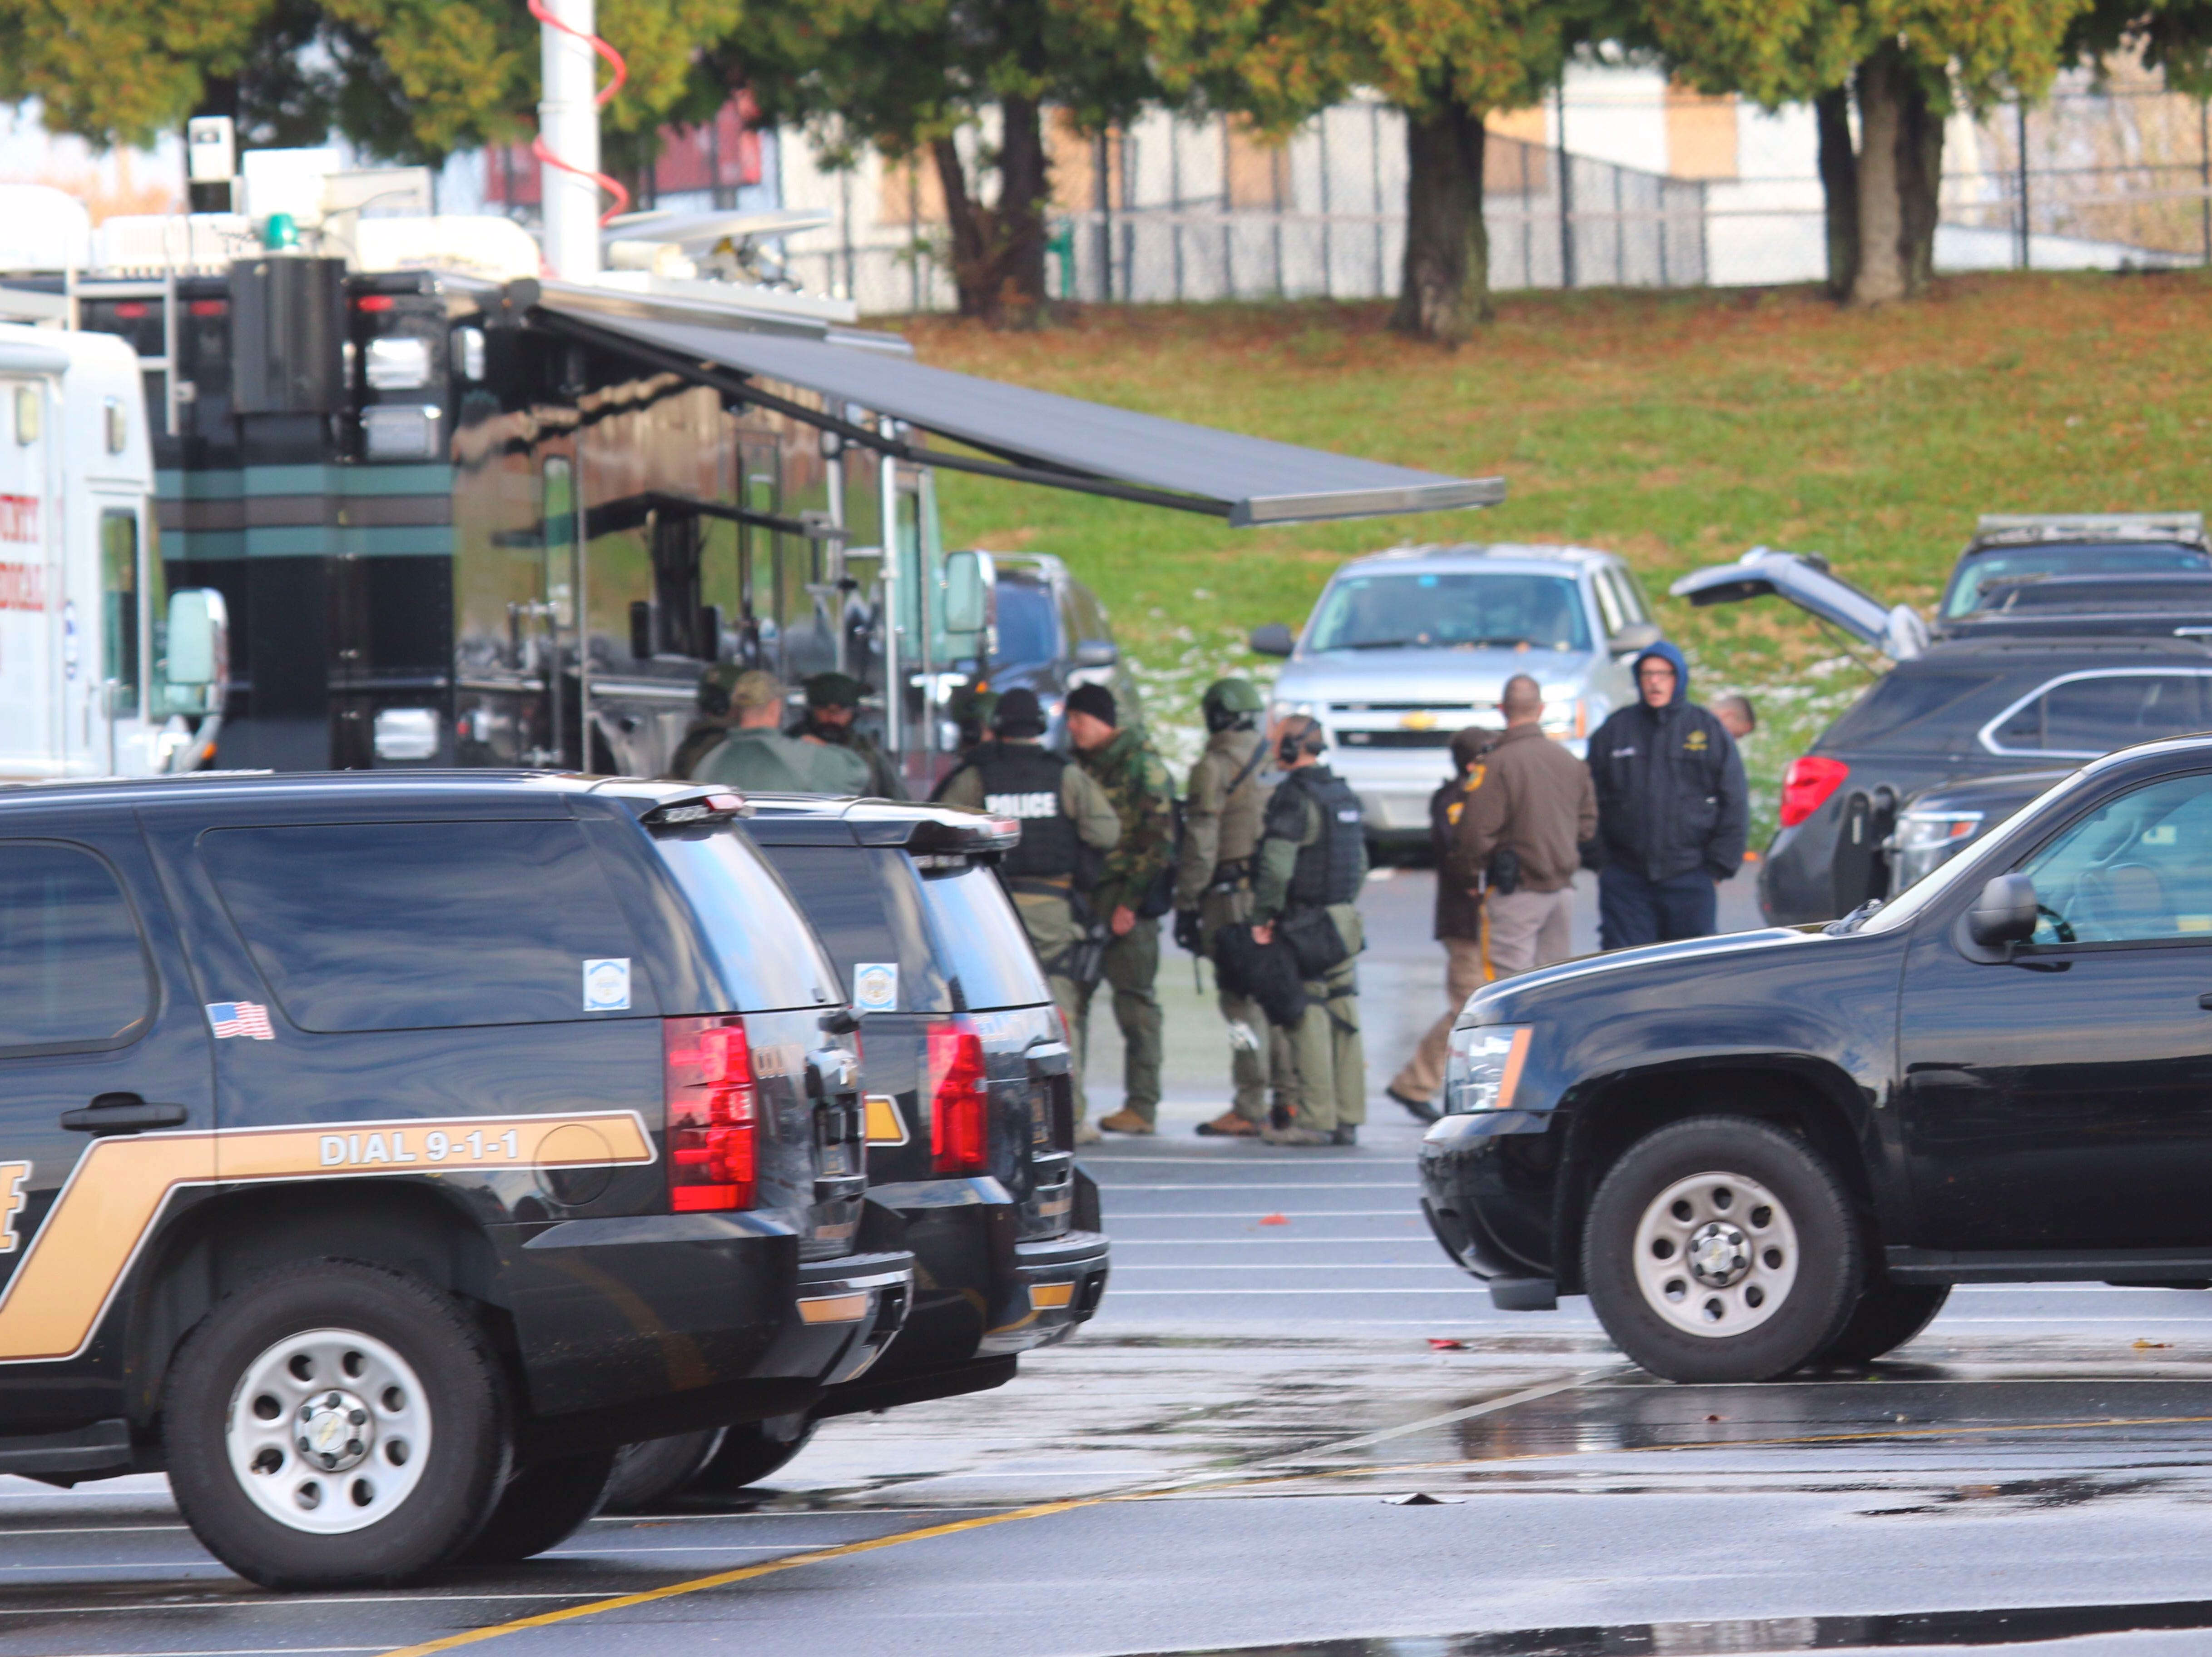 Police officer arrested after all-night standoff near Newport caused 'shelter in place' order